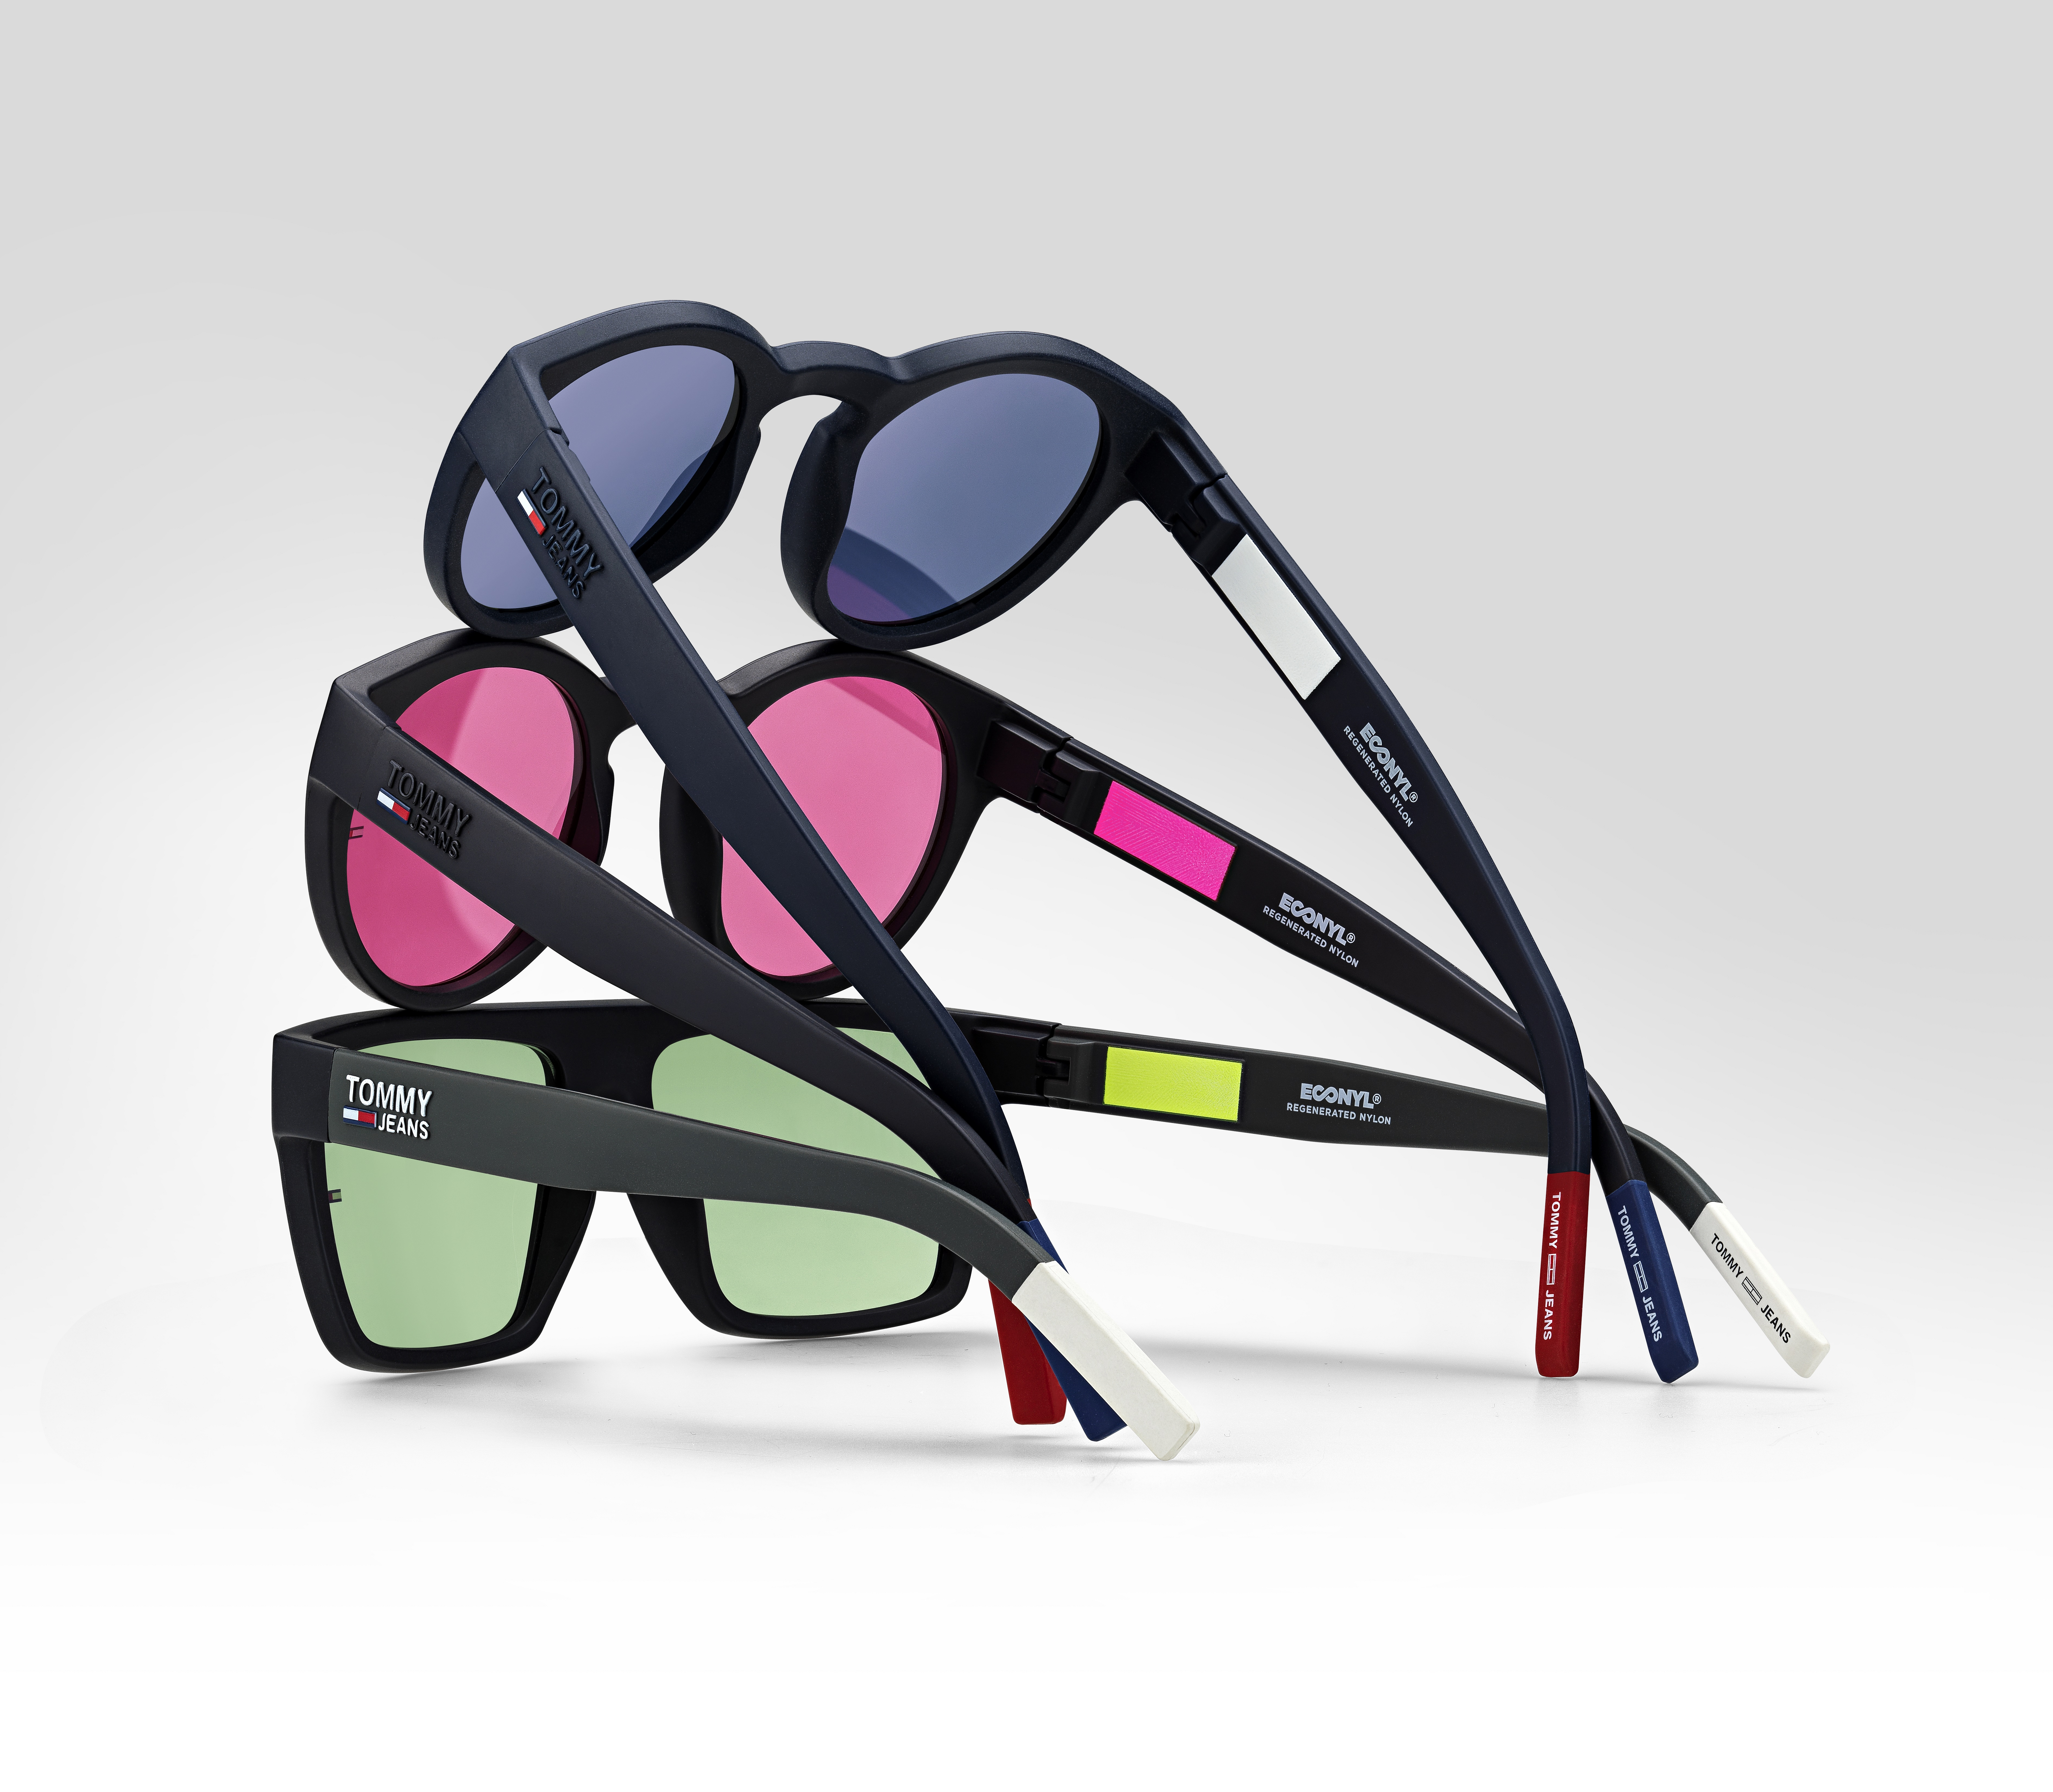 The Tommy Jeans eyewear collectiom manufactured by Safilo Group employing Aquafil's Econyl.